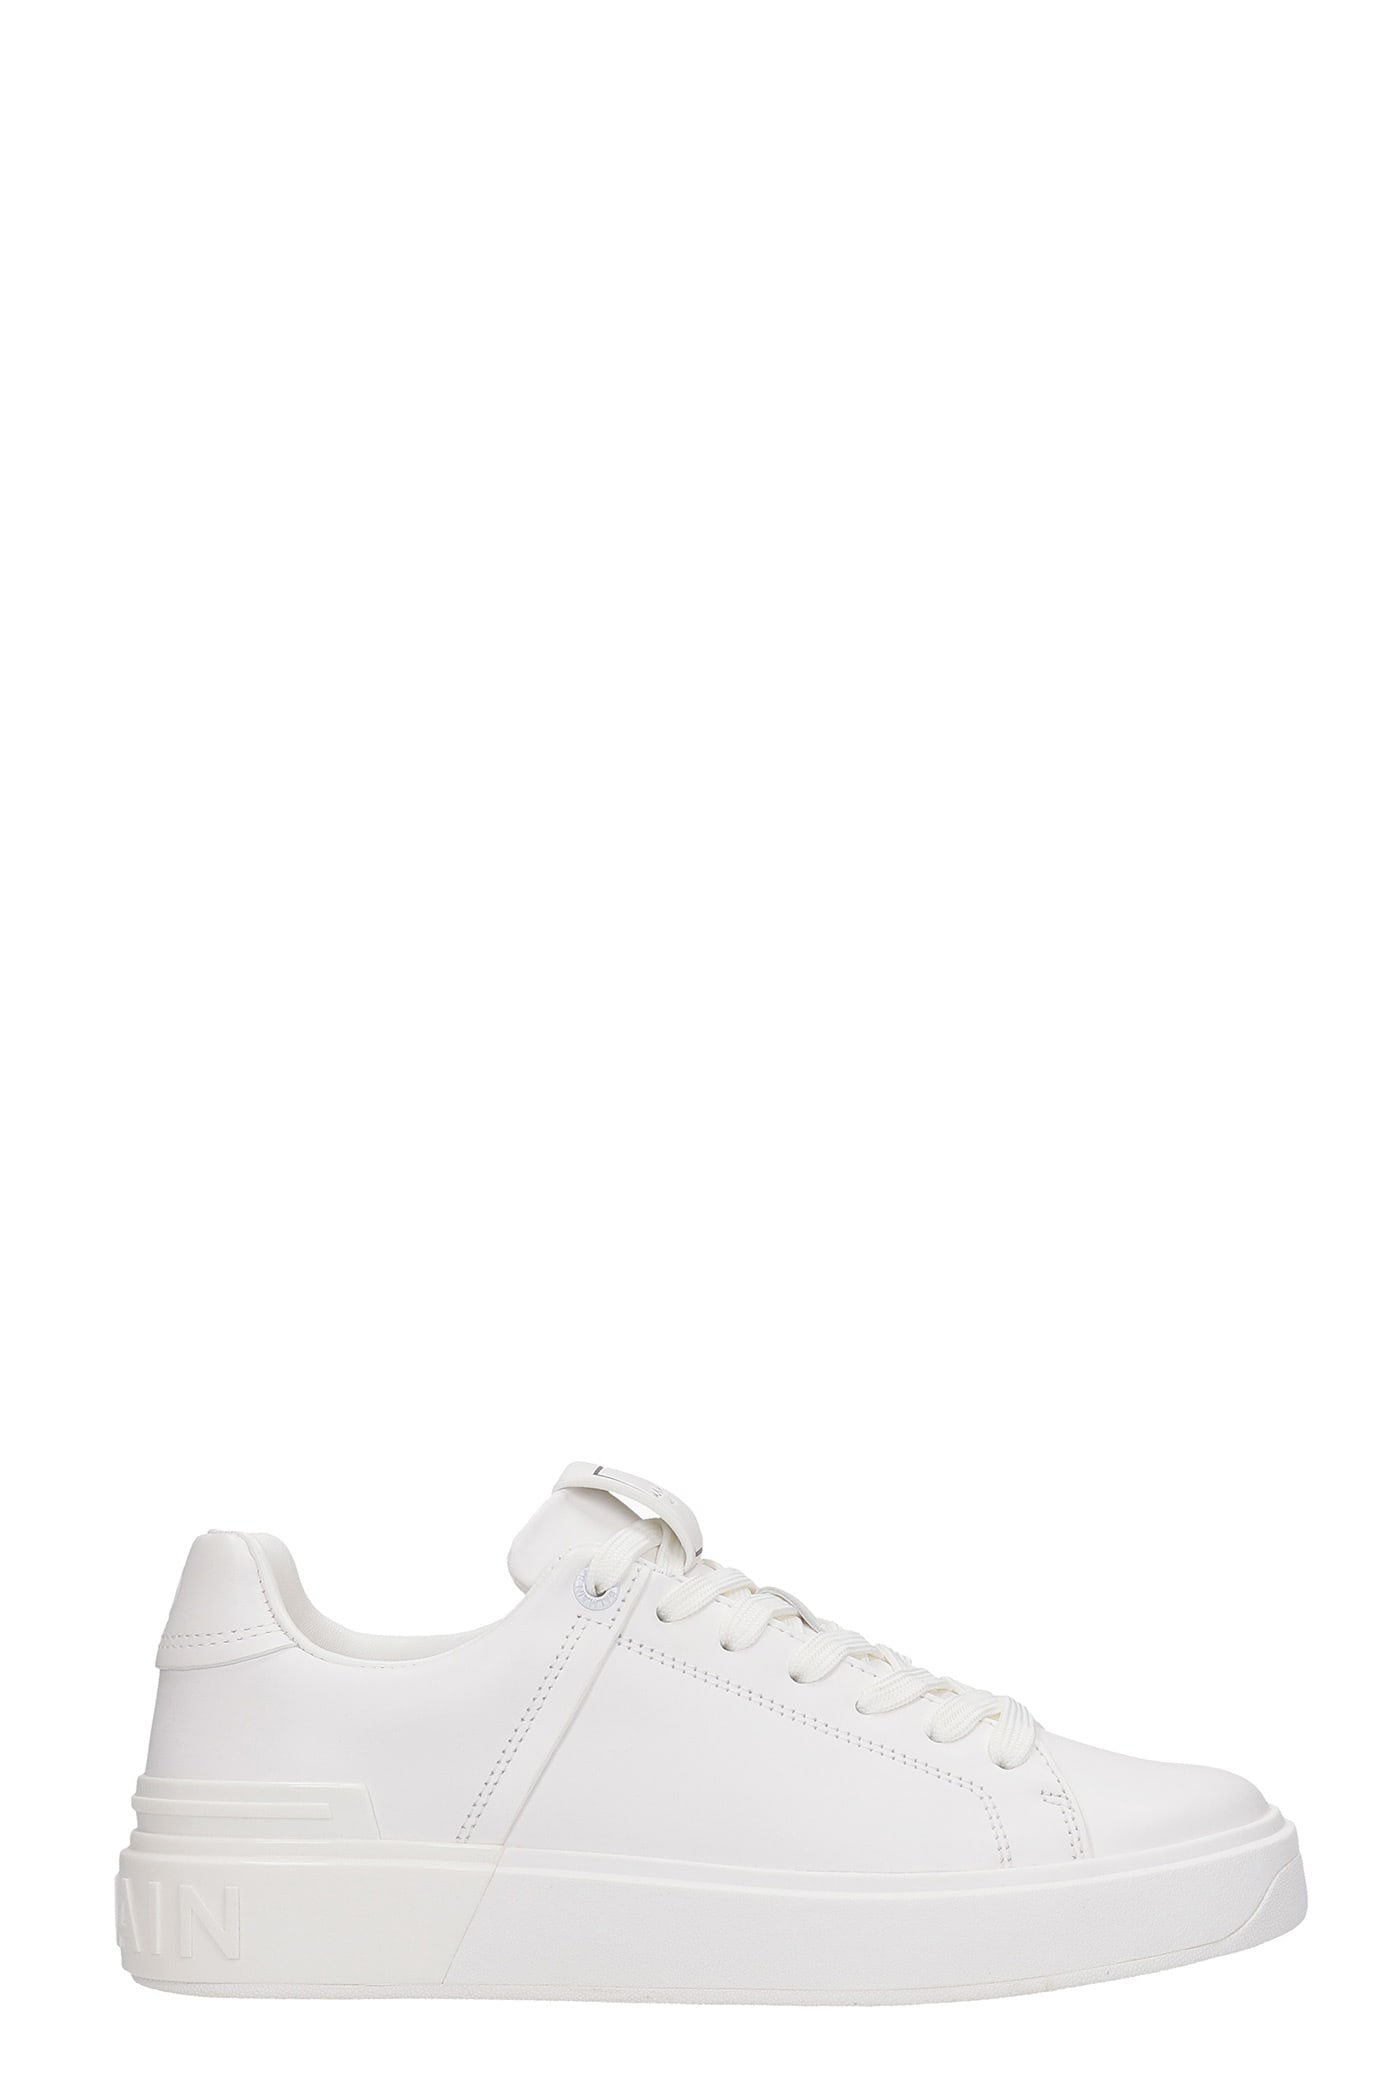 Balmain Leathers SNEAKERS IN WHITE LEATHER